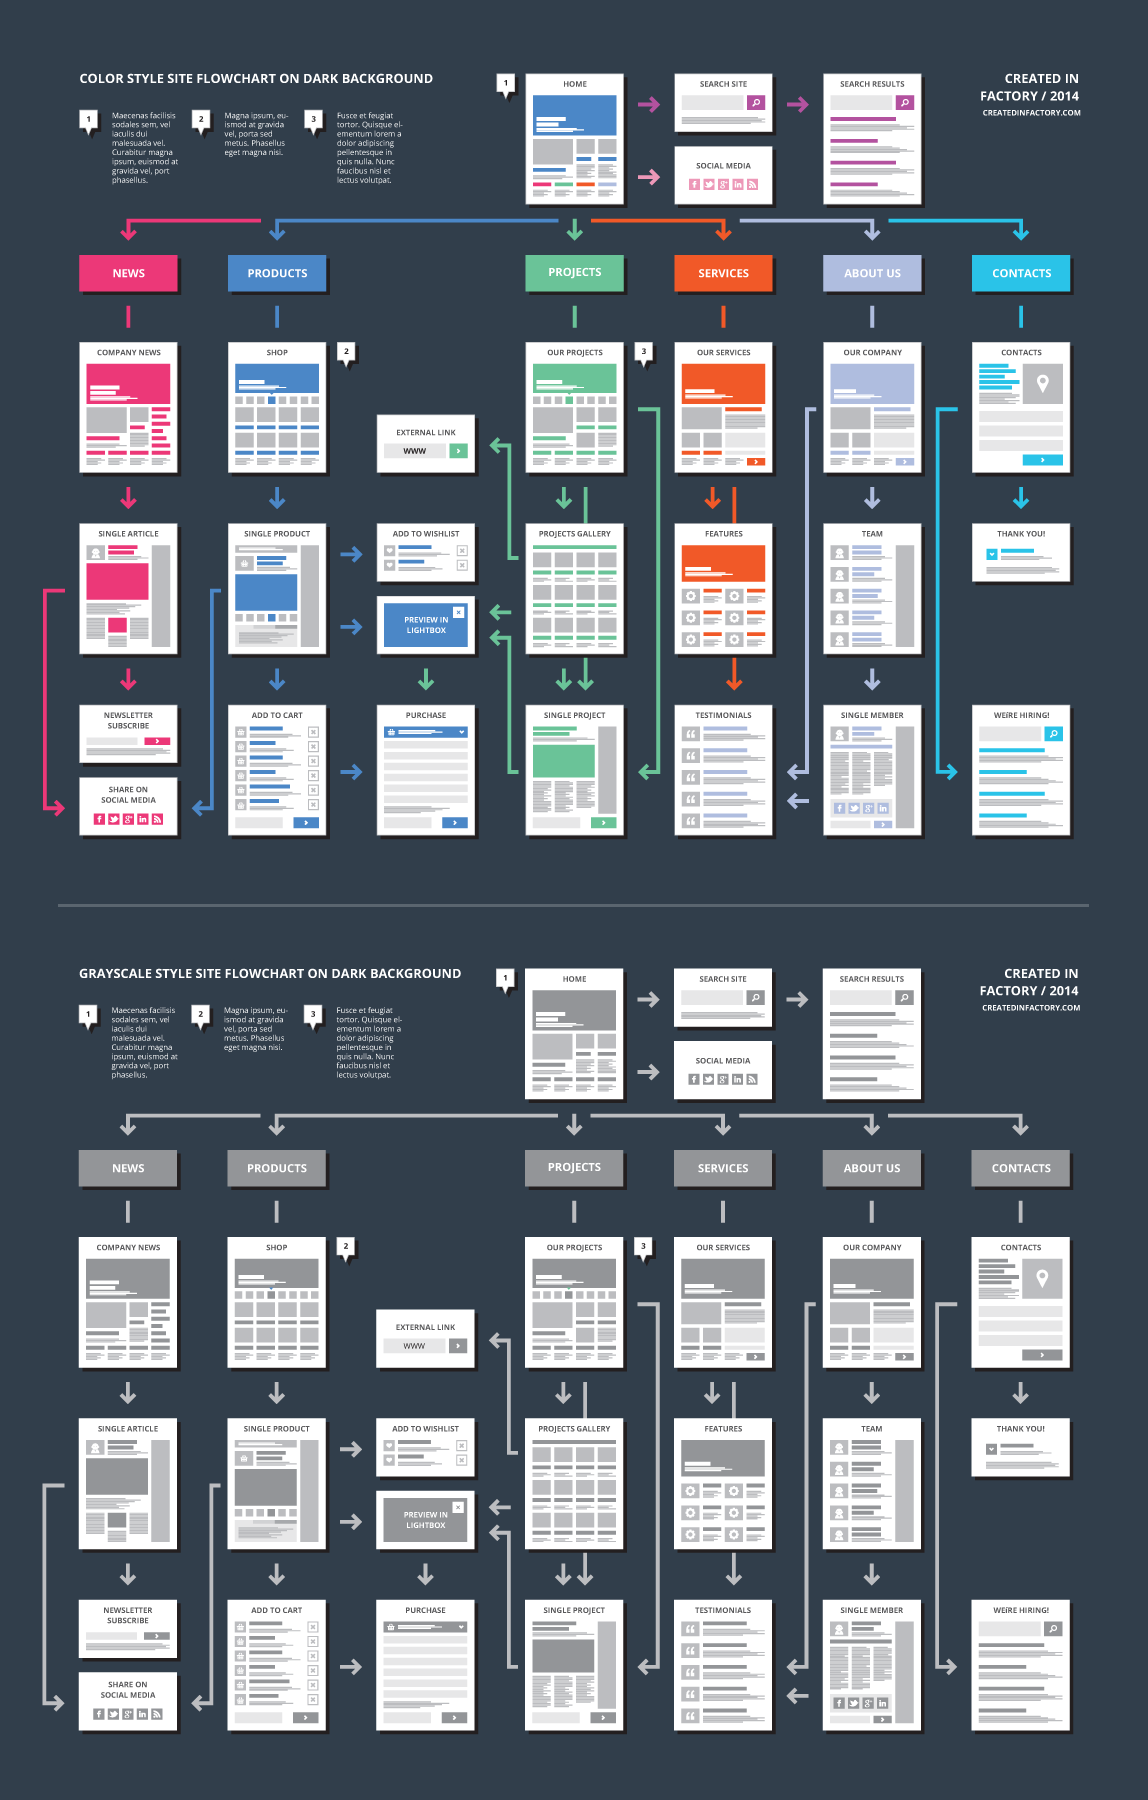 Easyone website flowchart template on pinterest product image added in uiux collection in uiux category ccuart Choice Image